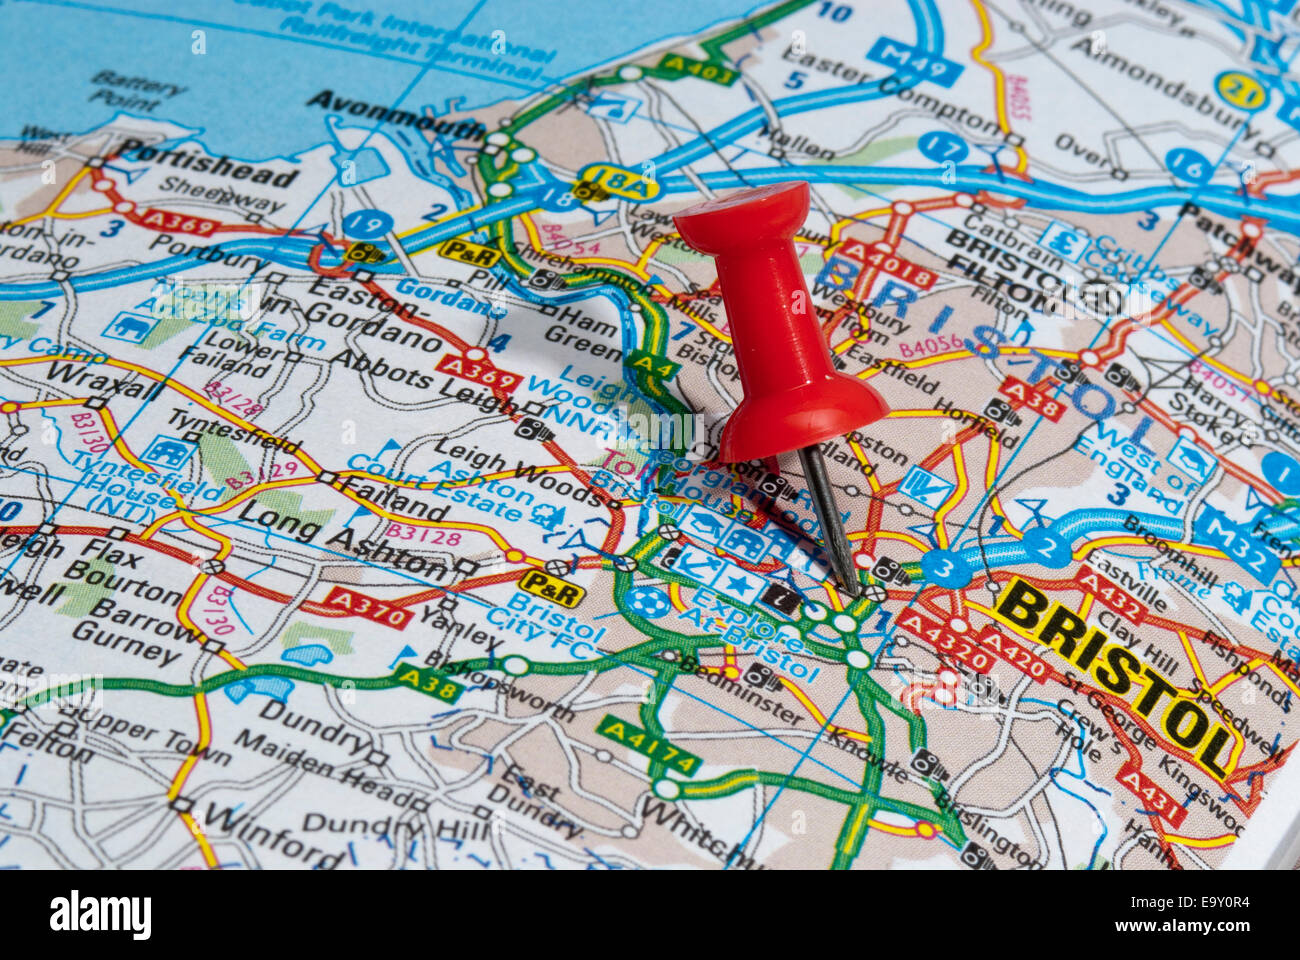 red map pin in road map pointing to city of Bristol Stock Photo